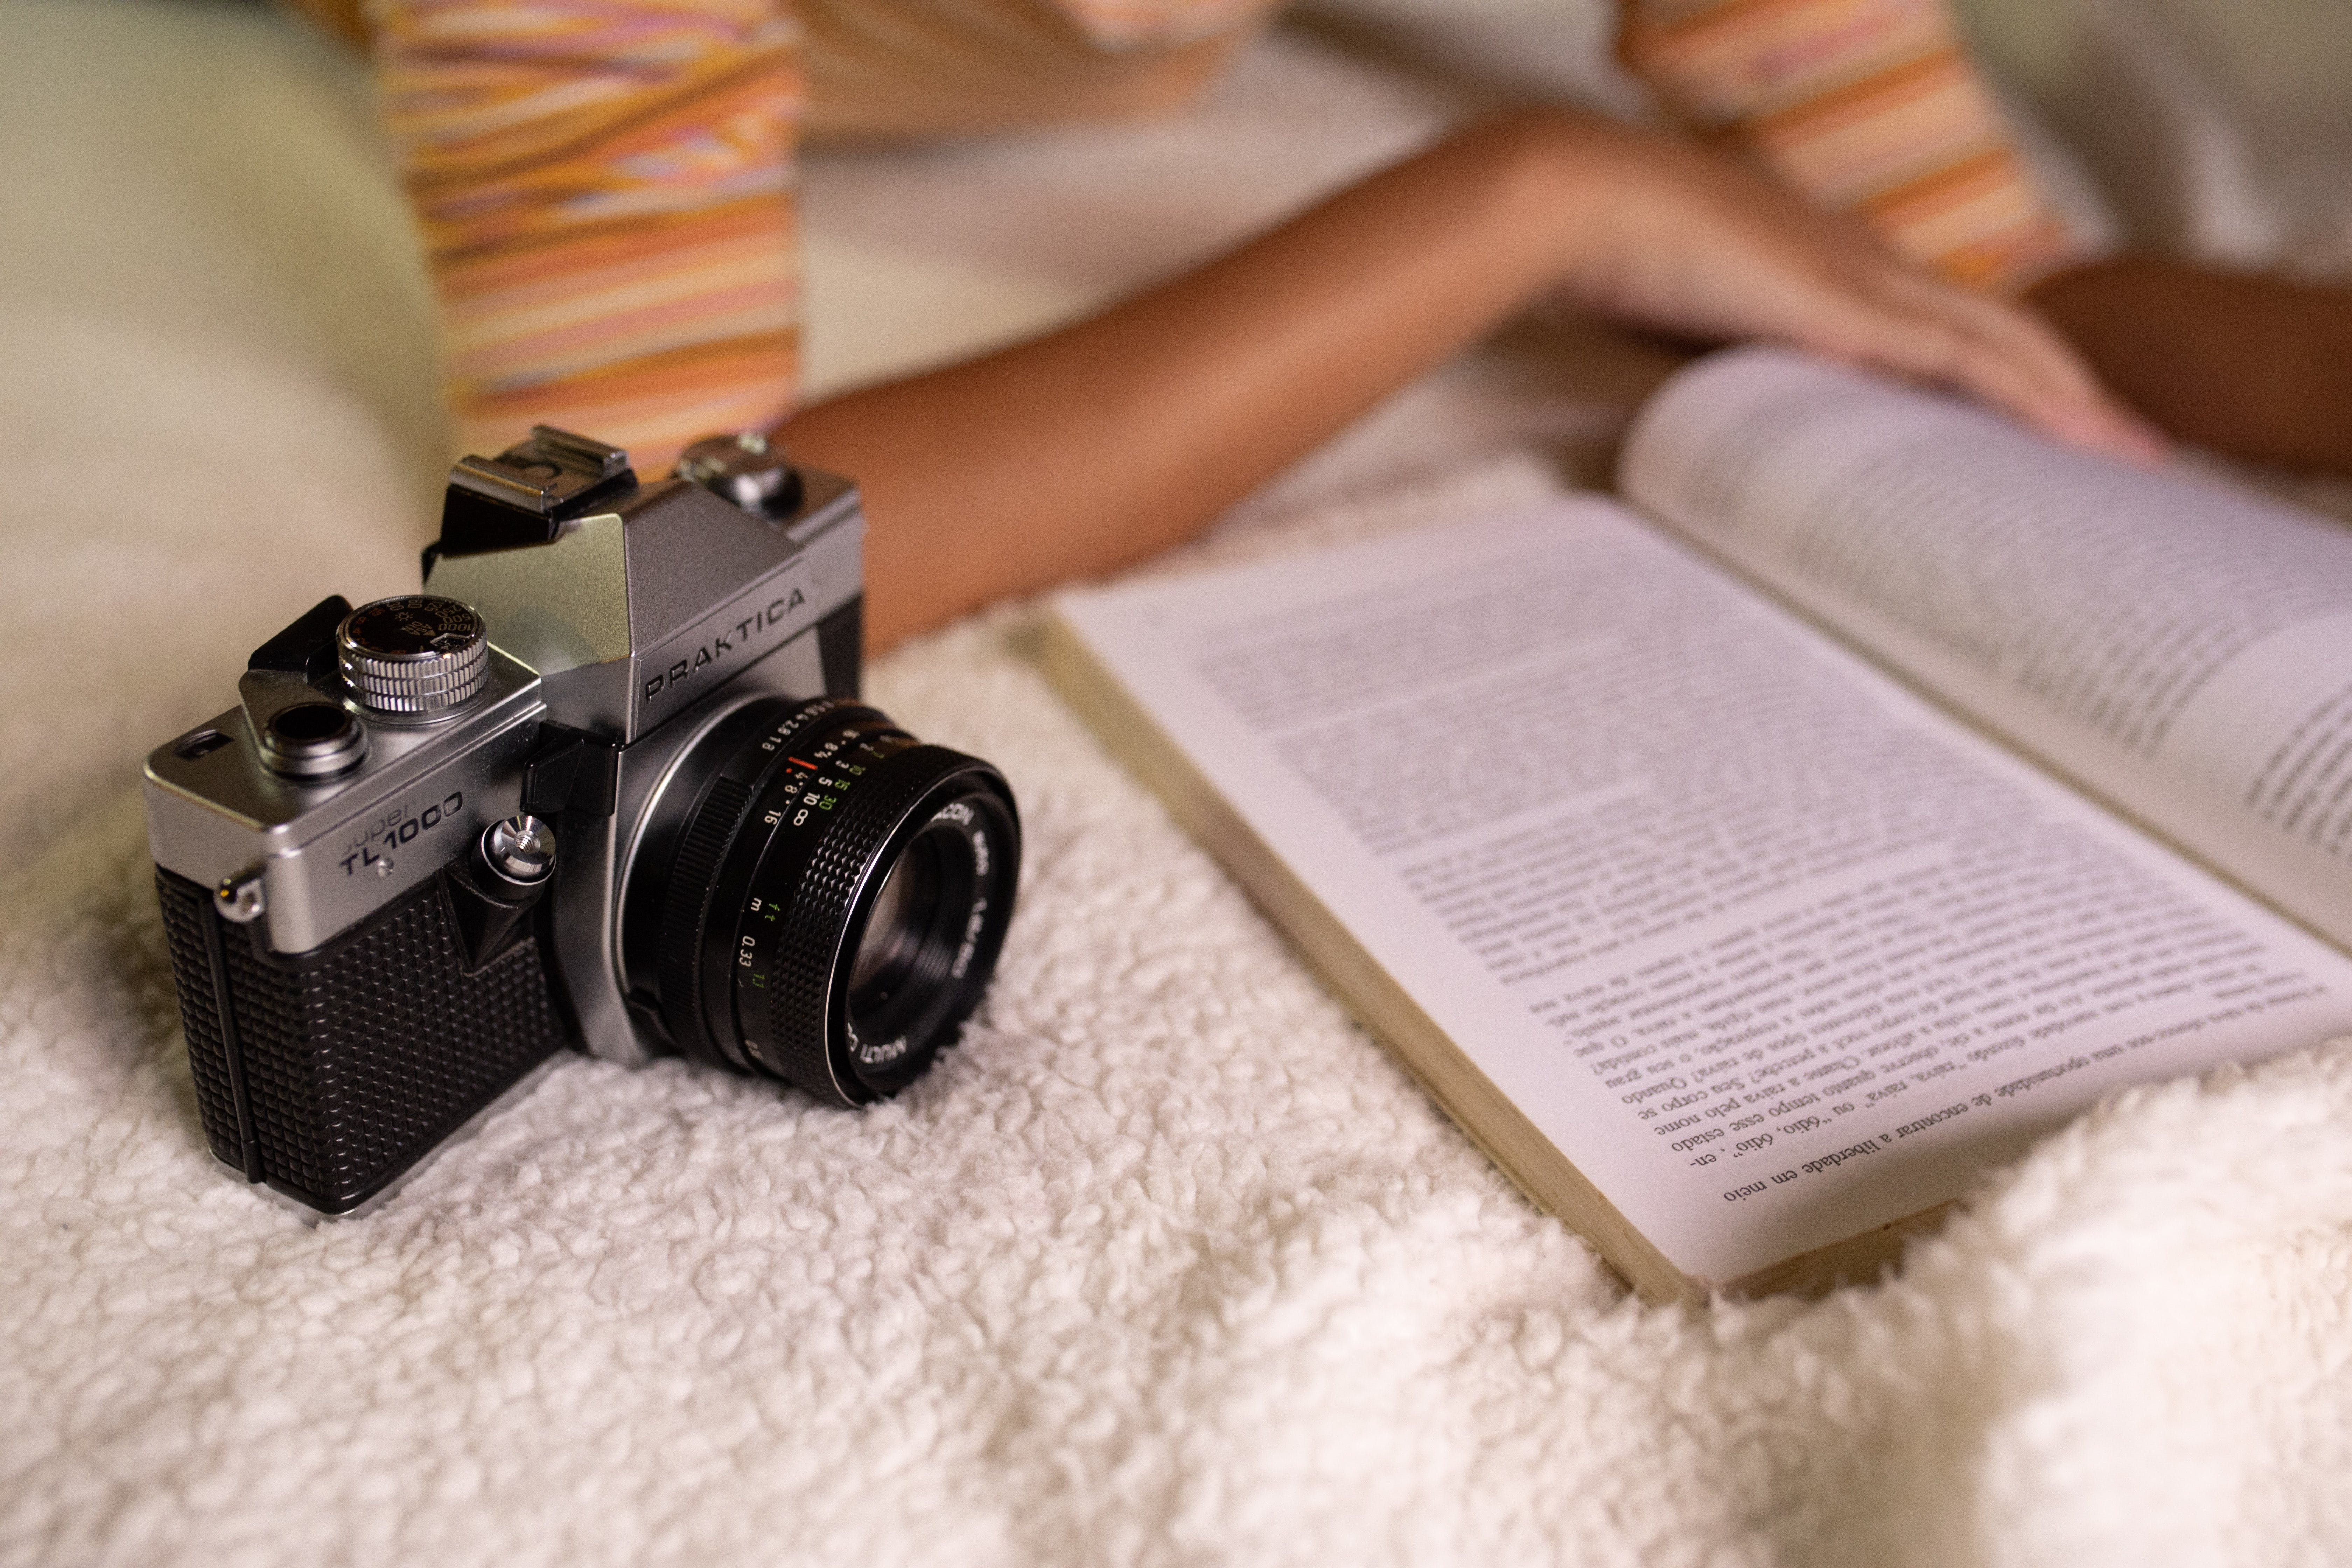 Black Slr Camera Beside Open Book